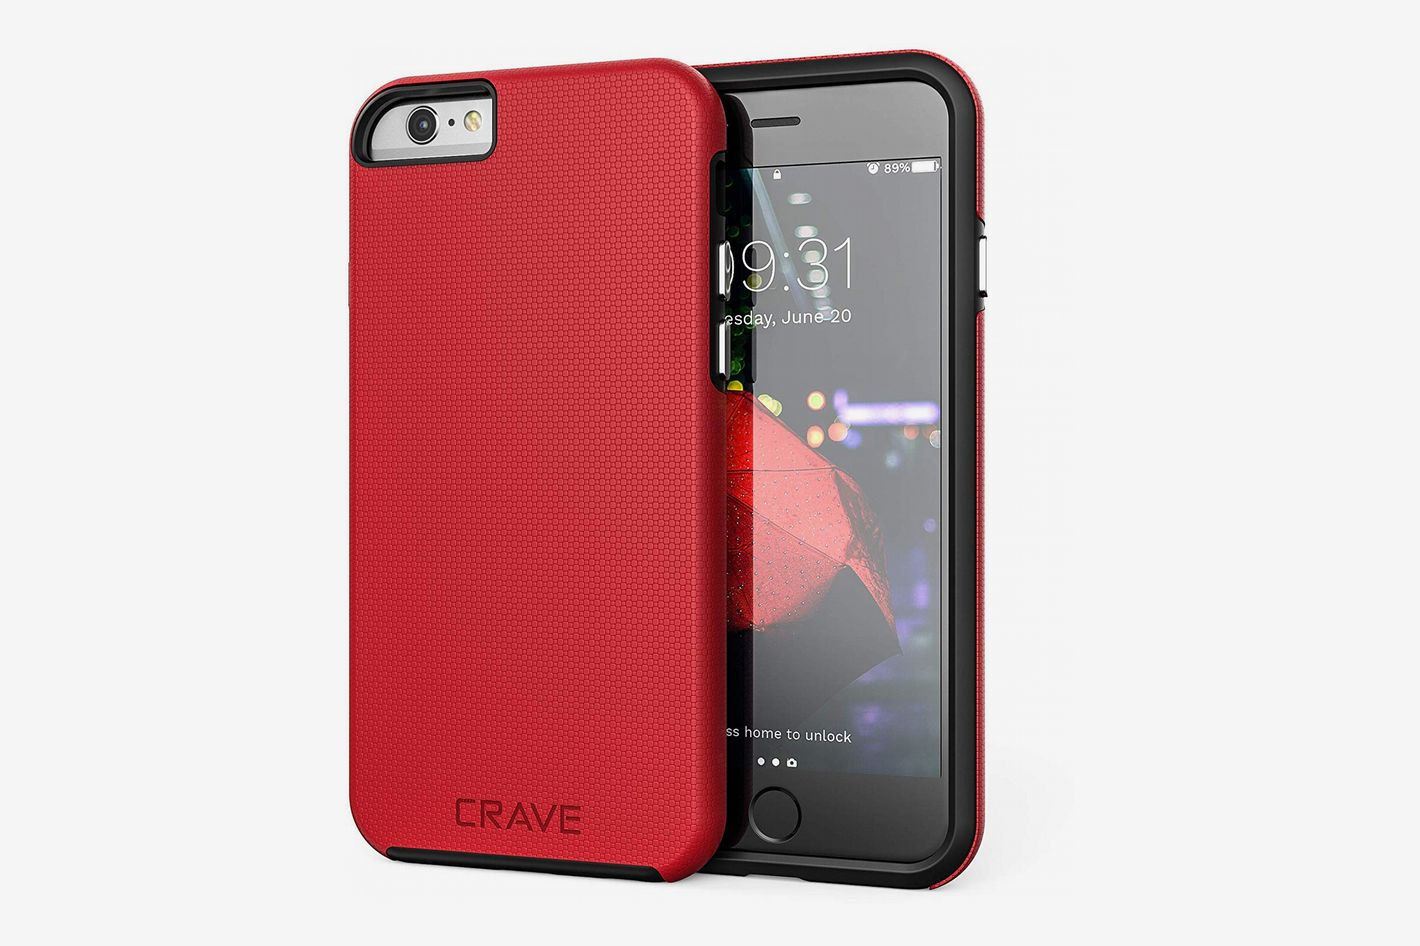 16 Best iPhone Cases on Amazon 2019